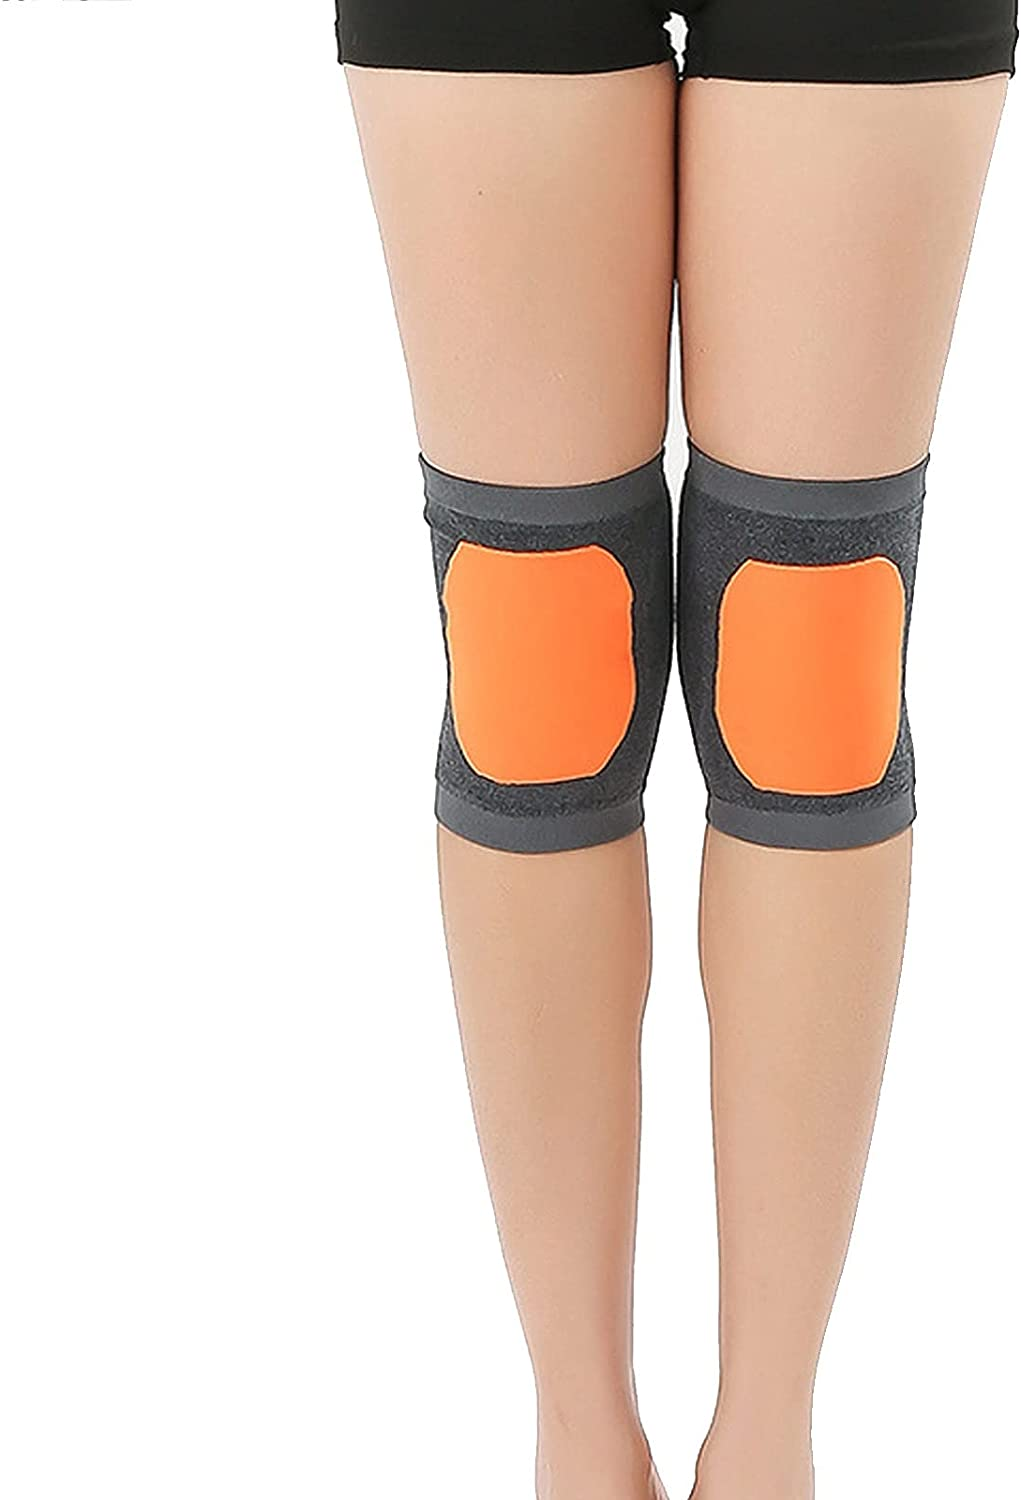 Cheap sale FGJH Unisex Protection Knee Joints an Plus Anti-Sliding Cashmere NEW before selling ☆